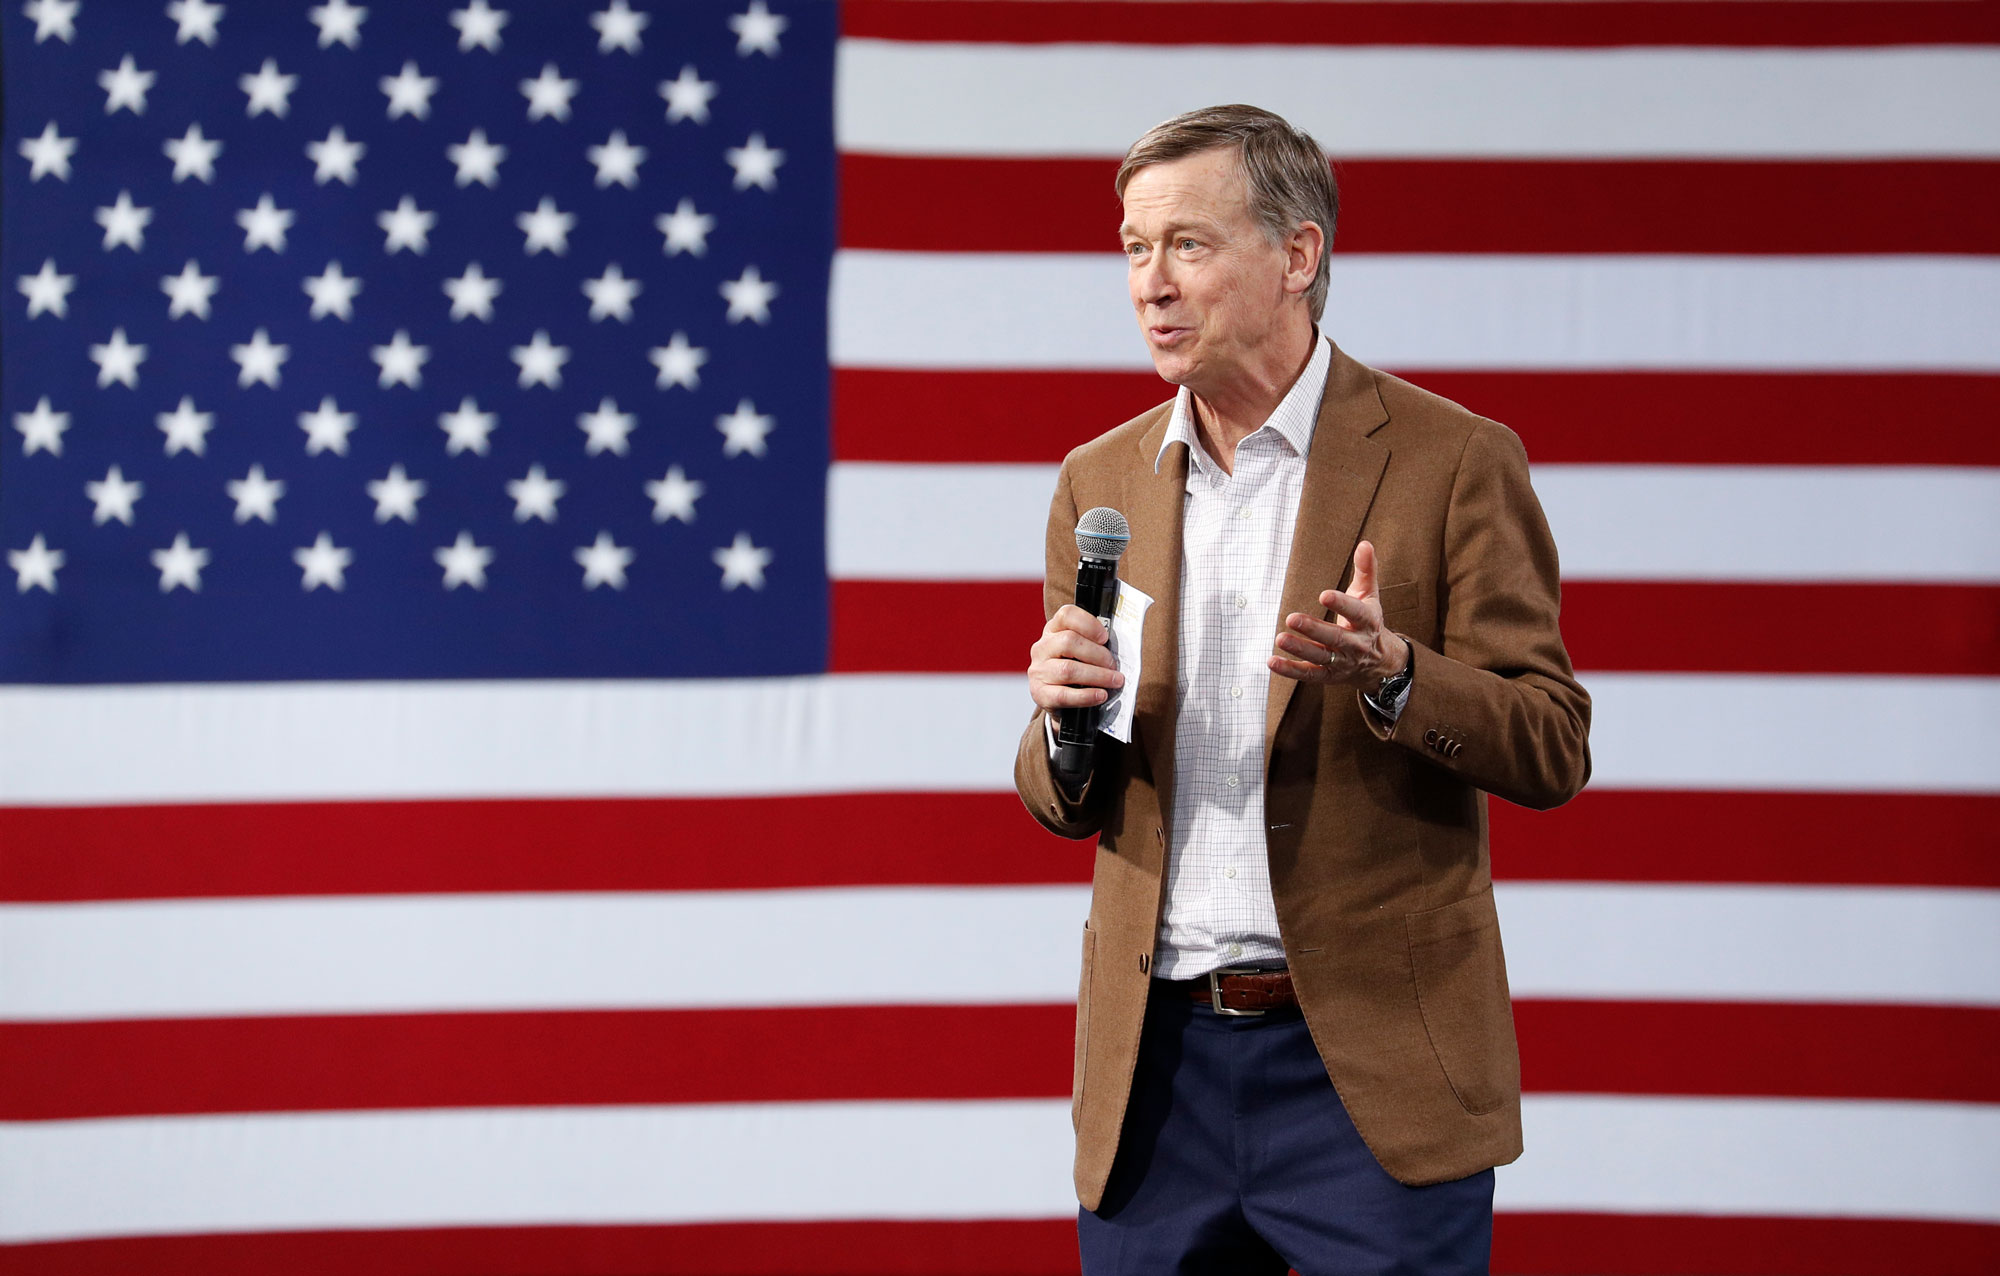 <p>Democratic president candidate and former Colorado Gov. John Hickenlooper speaks at a Service Employees International Union forum on labor issues, Saturday, April 27, 2019, in Las Vegas.</p>